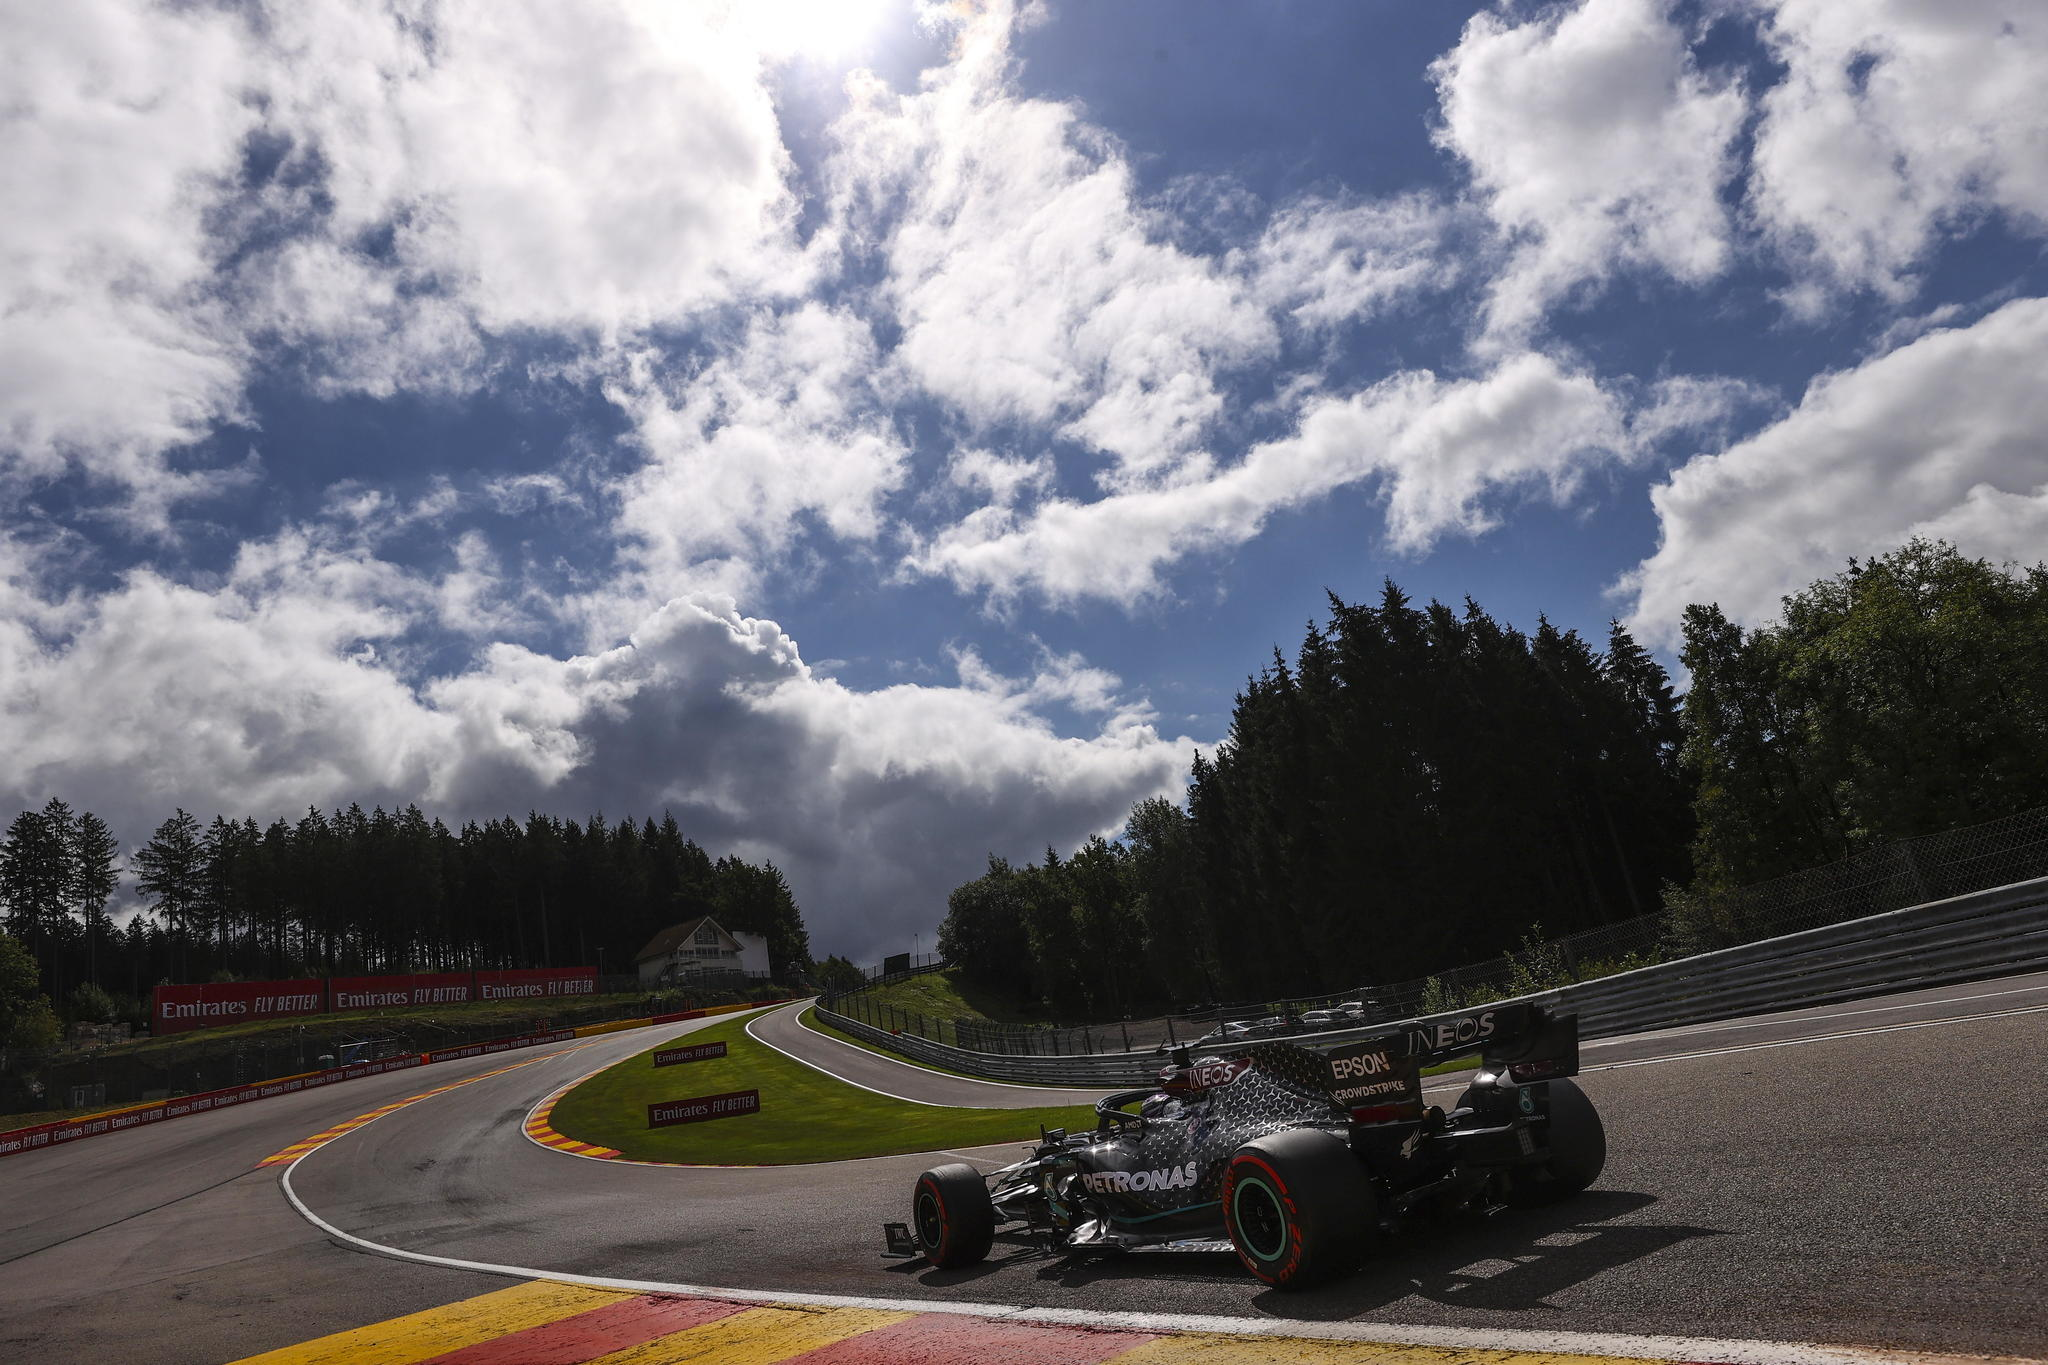 Stavelot (Belgium), 29/08/2020.- British Formula One driver Lewis lt;HIT gt;Hamilton lt;/HIT gt; of Mercedes-AMG Petronas in action during the third practice session at the Spa-Francorchamps race track in Stavelot, Belgium, 29 August 2020. The 2020 Formula One Grand Prix of Belgium will take place on 30 August 2020. (Fórmula Uno, Bélgica) EFE/EPA/Lars Baron / Pool